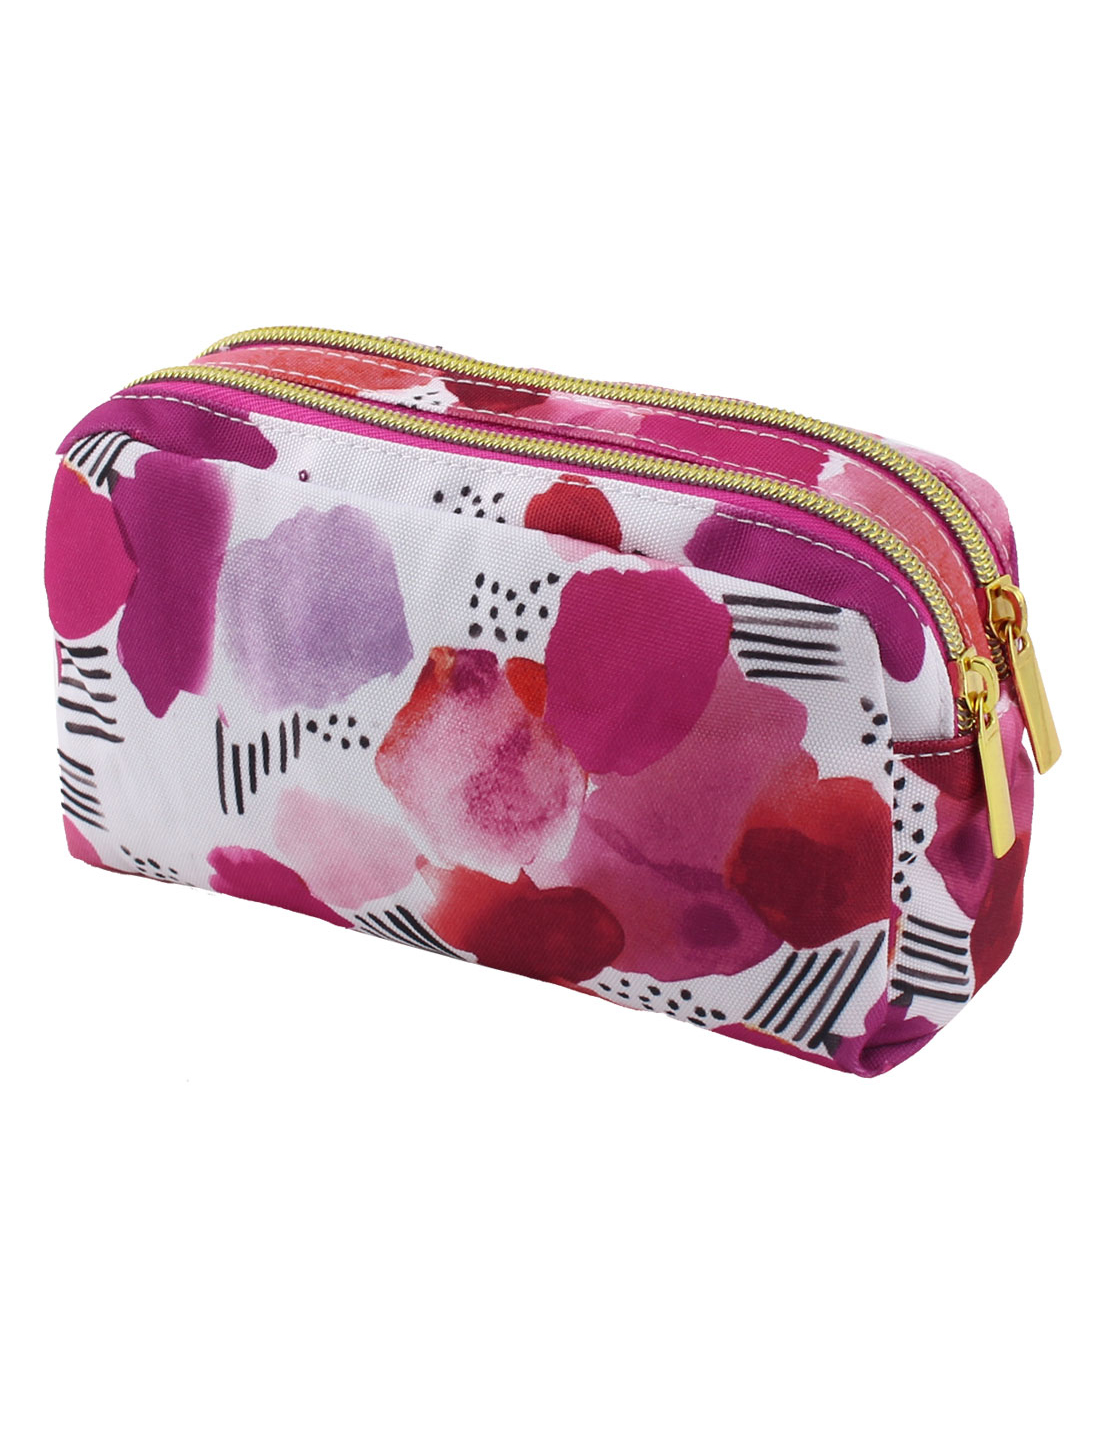 Lady Multifunction Travel Cosmetic Bag Makeup Pouch Toiletry Case Pink